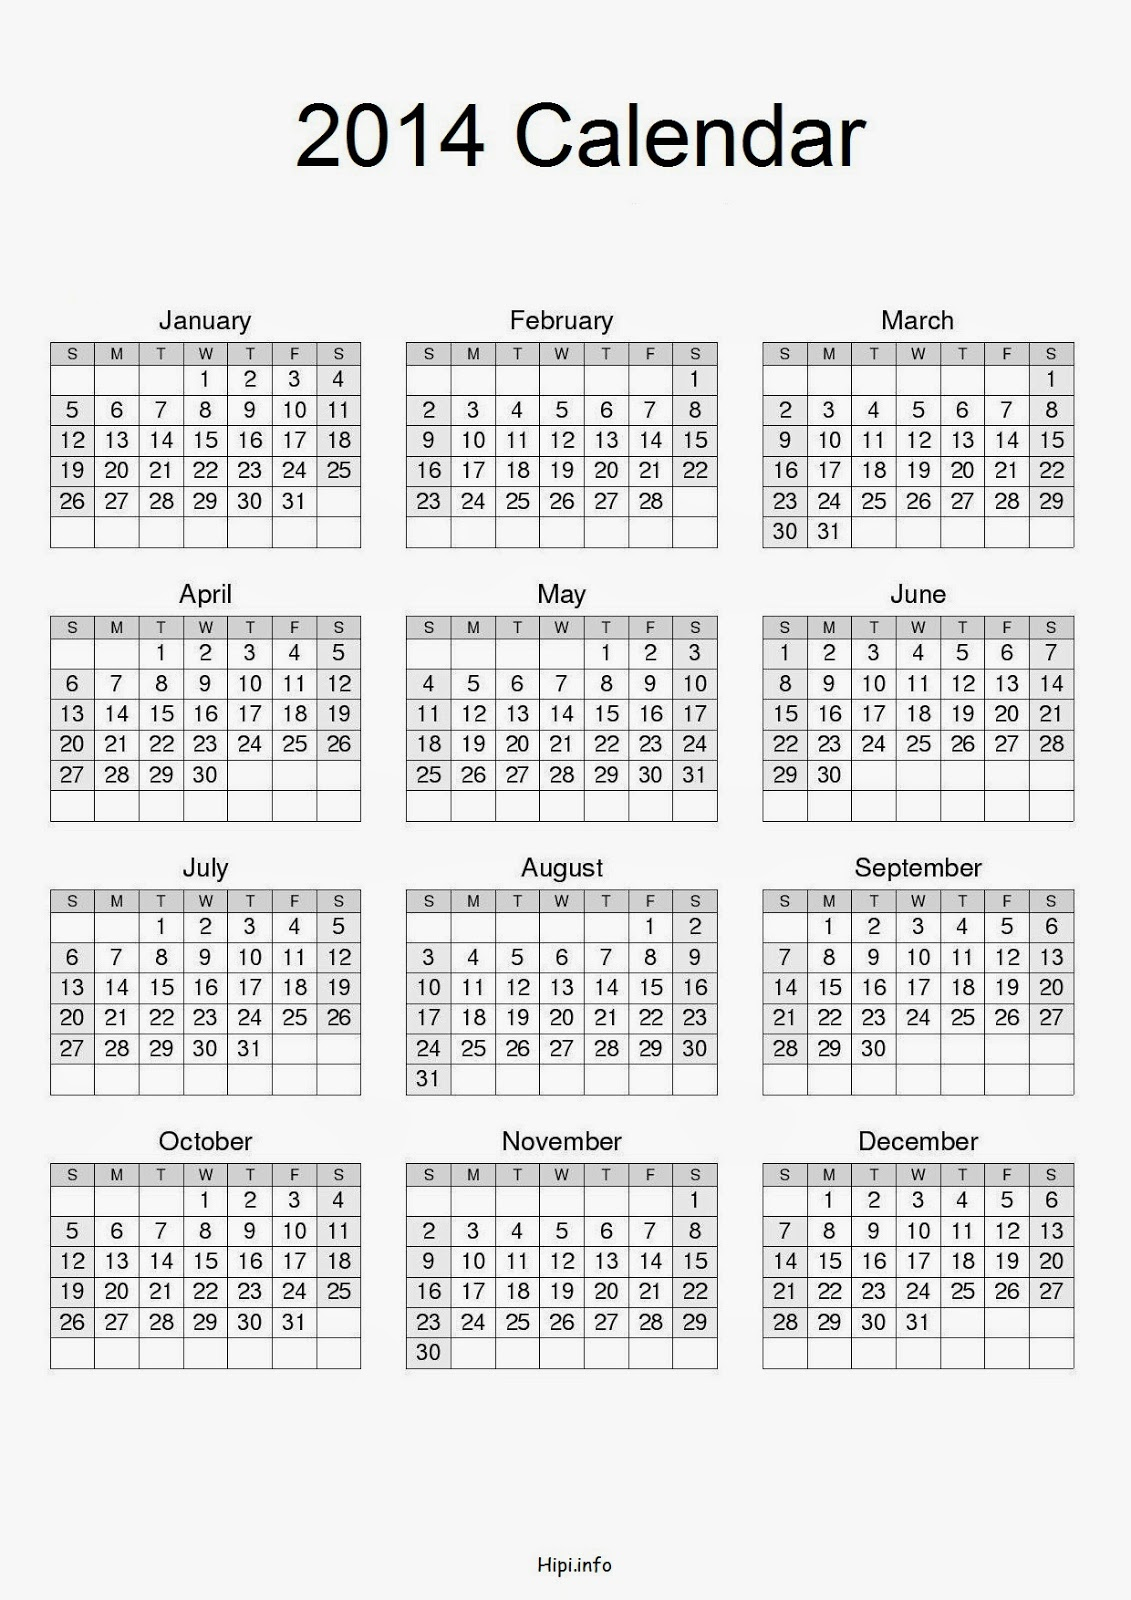 Twitter Headers / Facebook Covers / Wallpapers / Calendars: A4 Paper Size - Calendar 2014 - Free